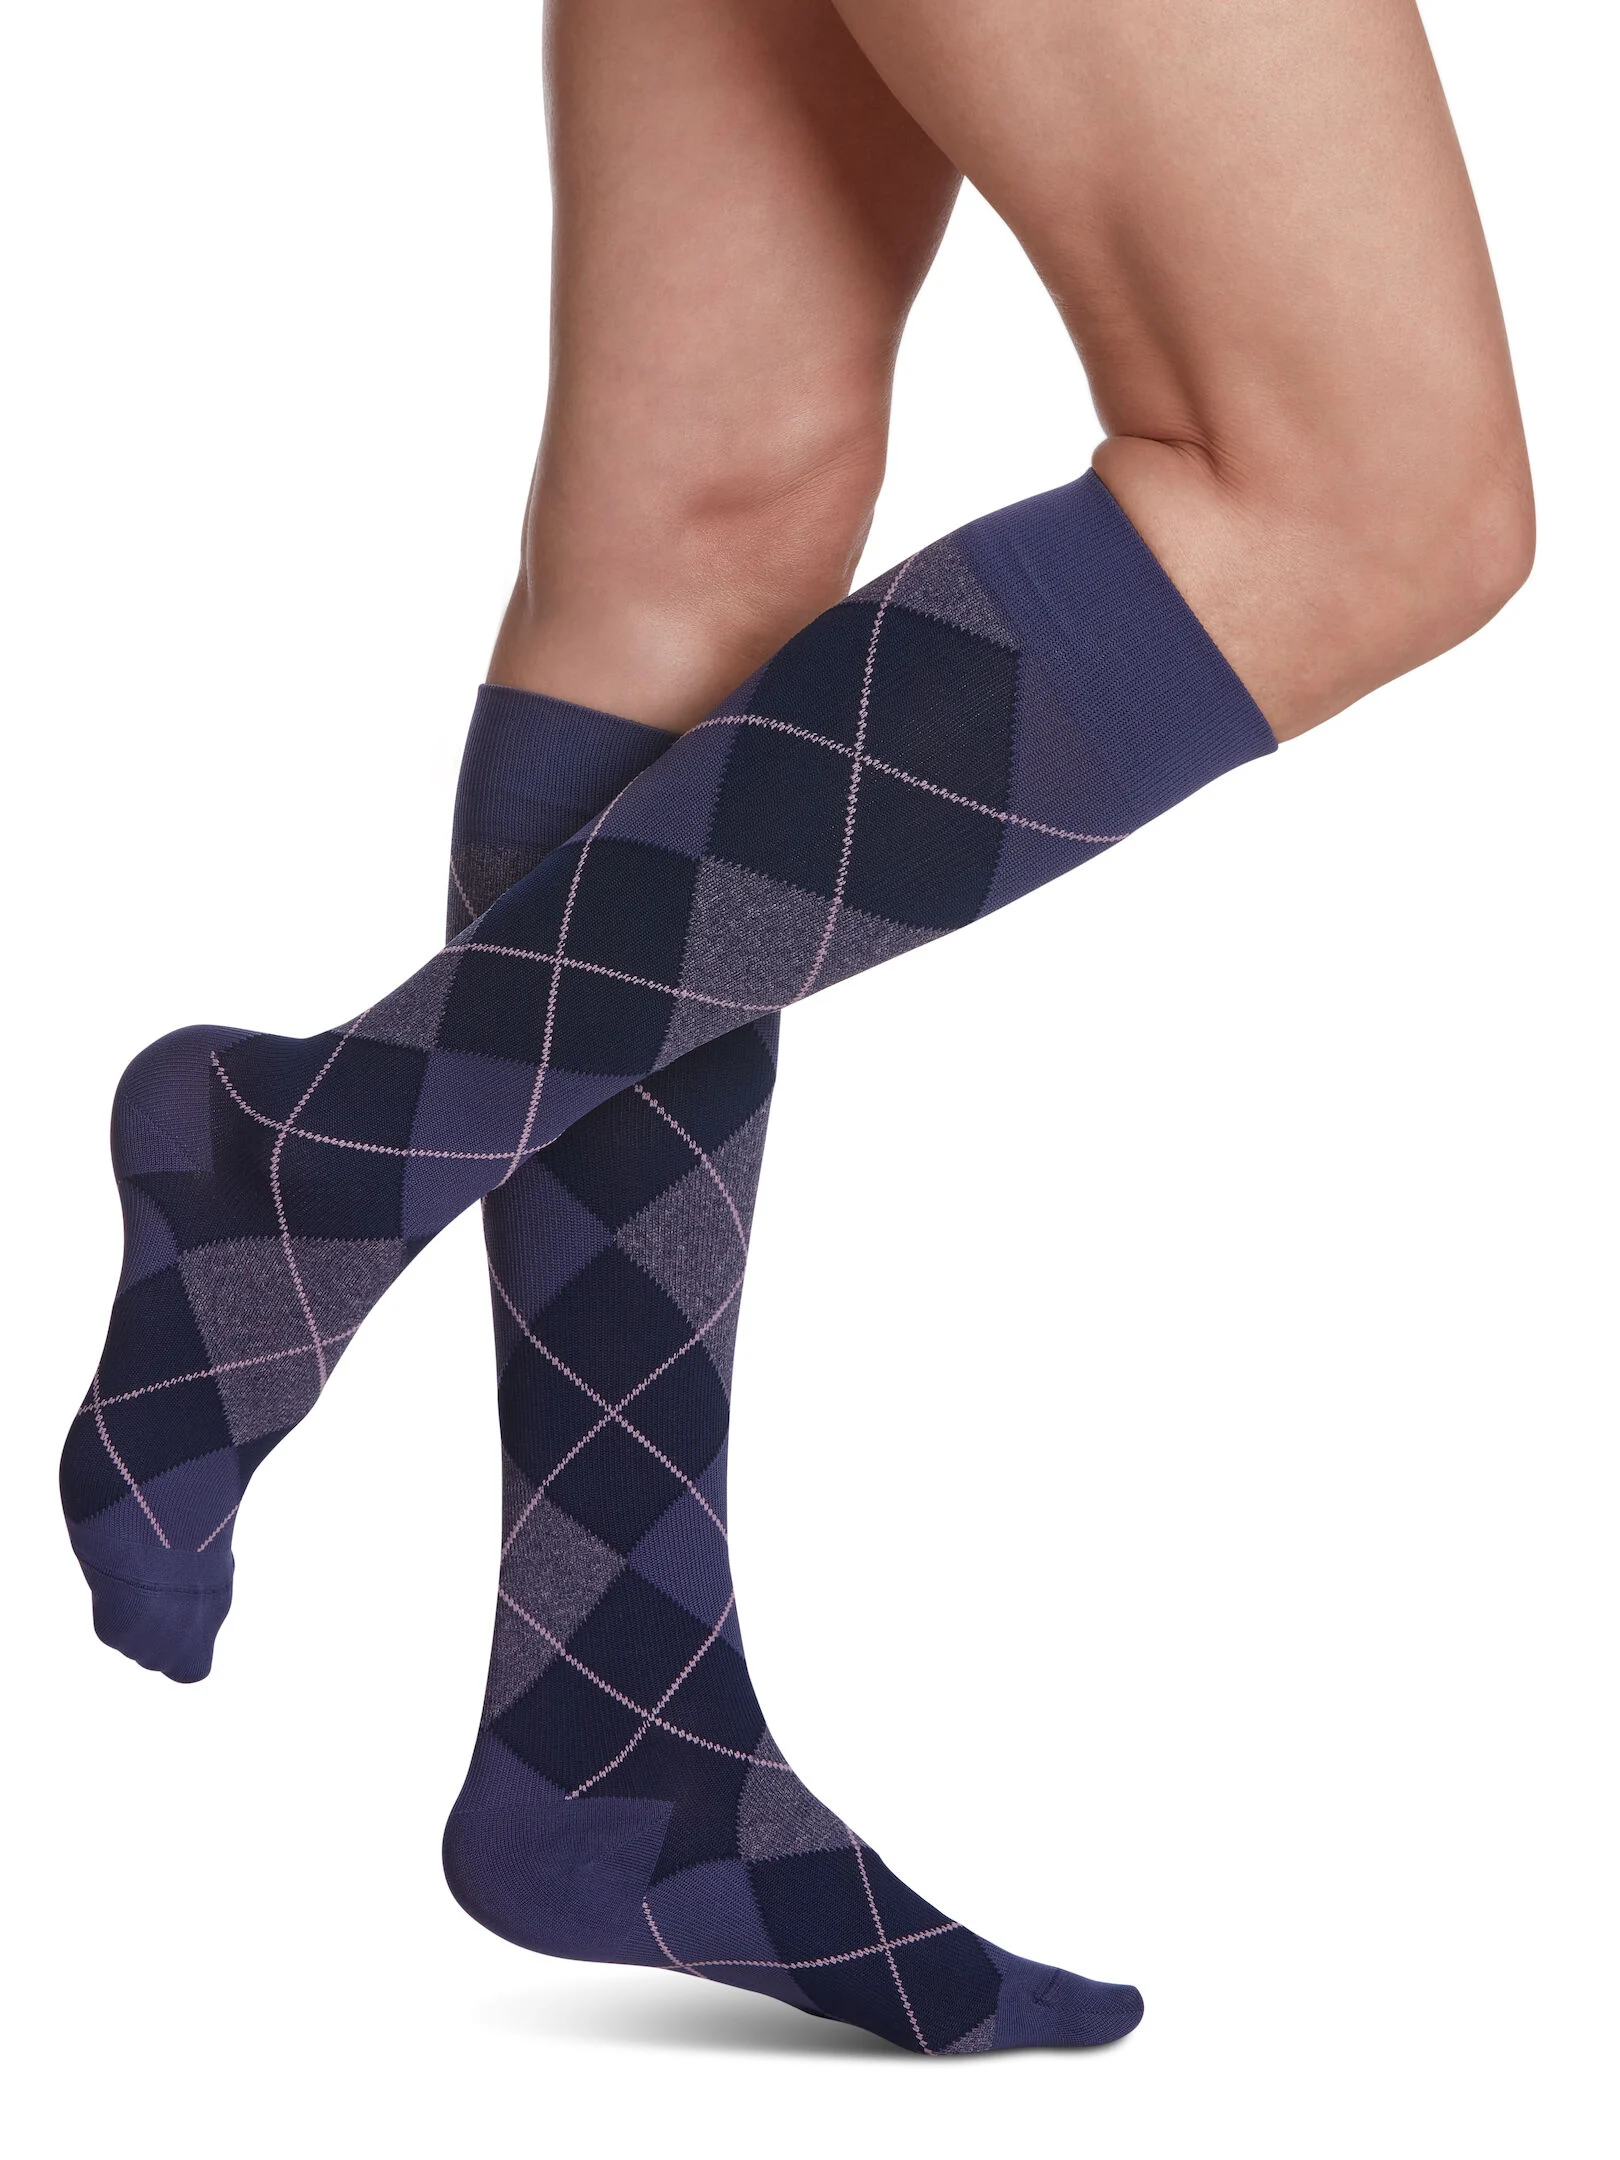 Sigvaris Microfibre Patterns Women's Compression Socks (Medical)